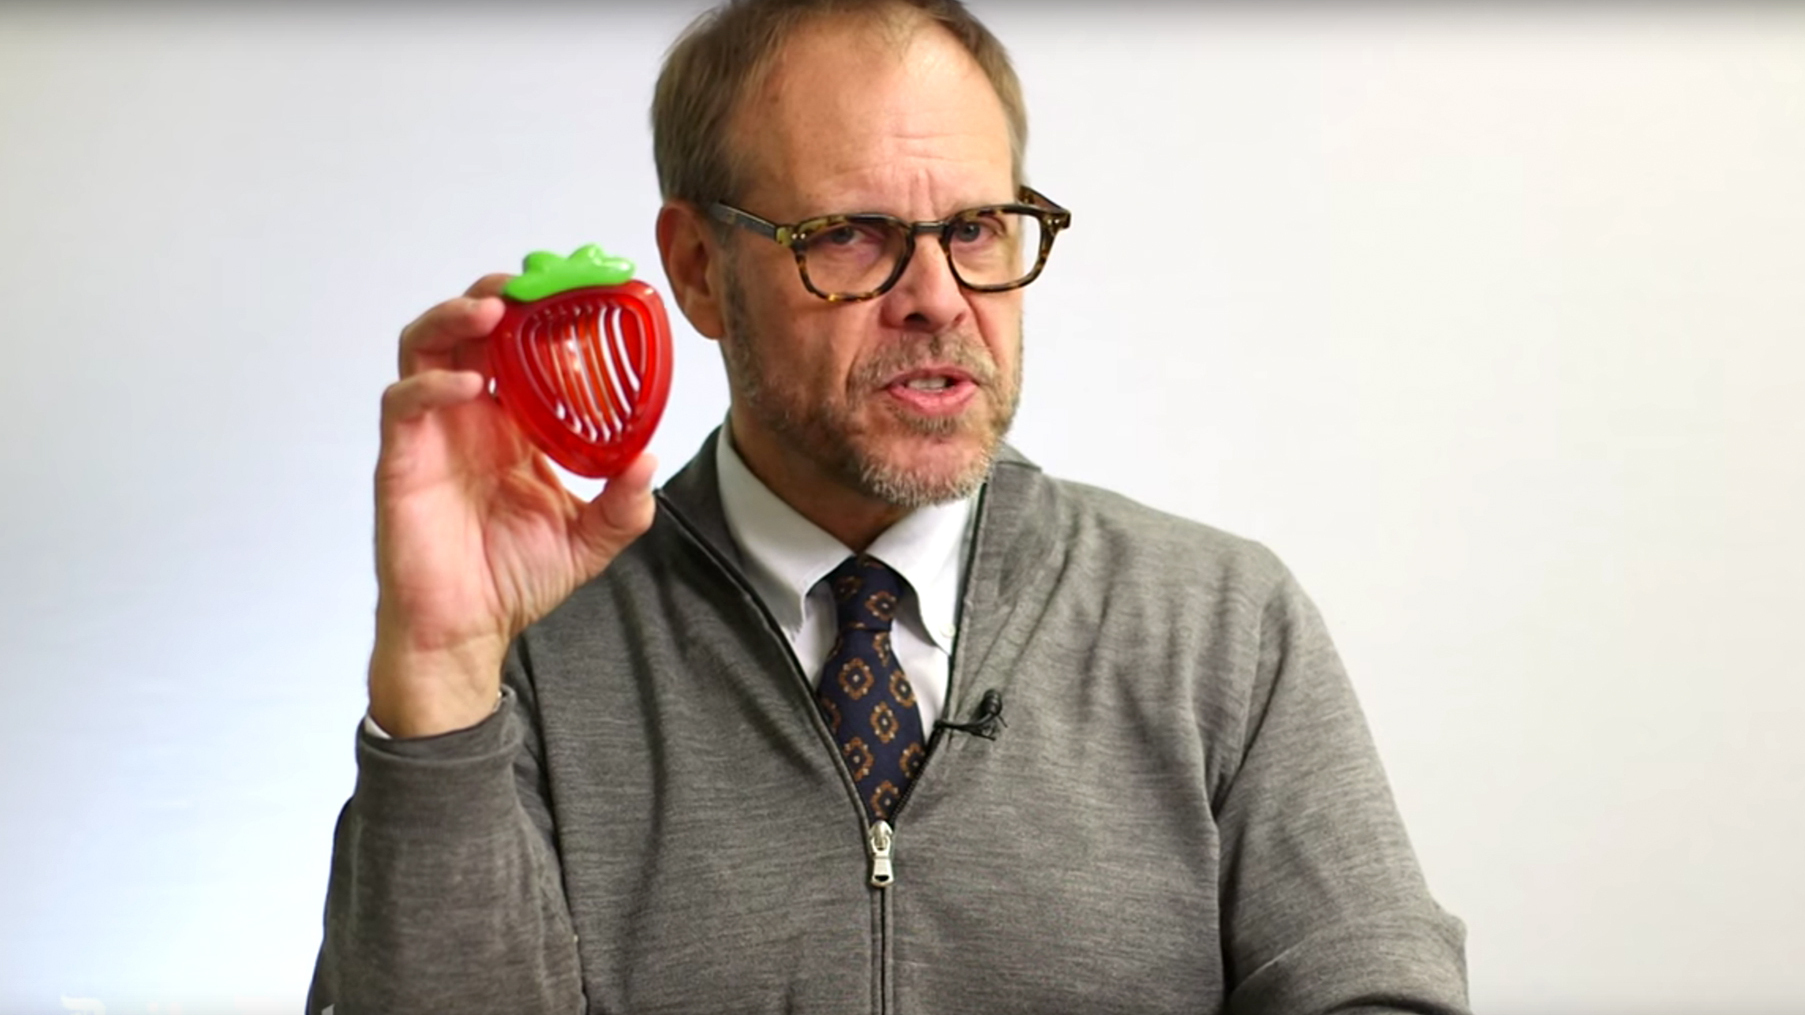 alton brown instagramalton brown steak, alton brown good eats, alton brown cooking show, alton brown cheesecake, alton brown crepes, alton brown tickets, alton brown instagram, alton brown youtube, alton brown everyday cook, alton brown mango